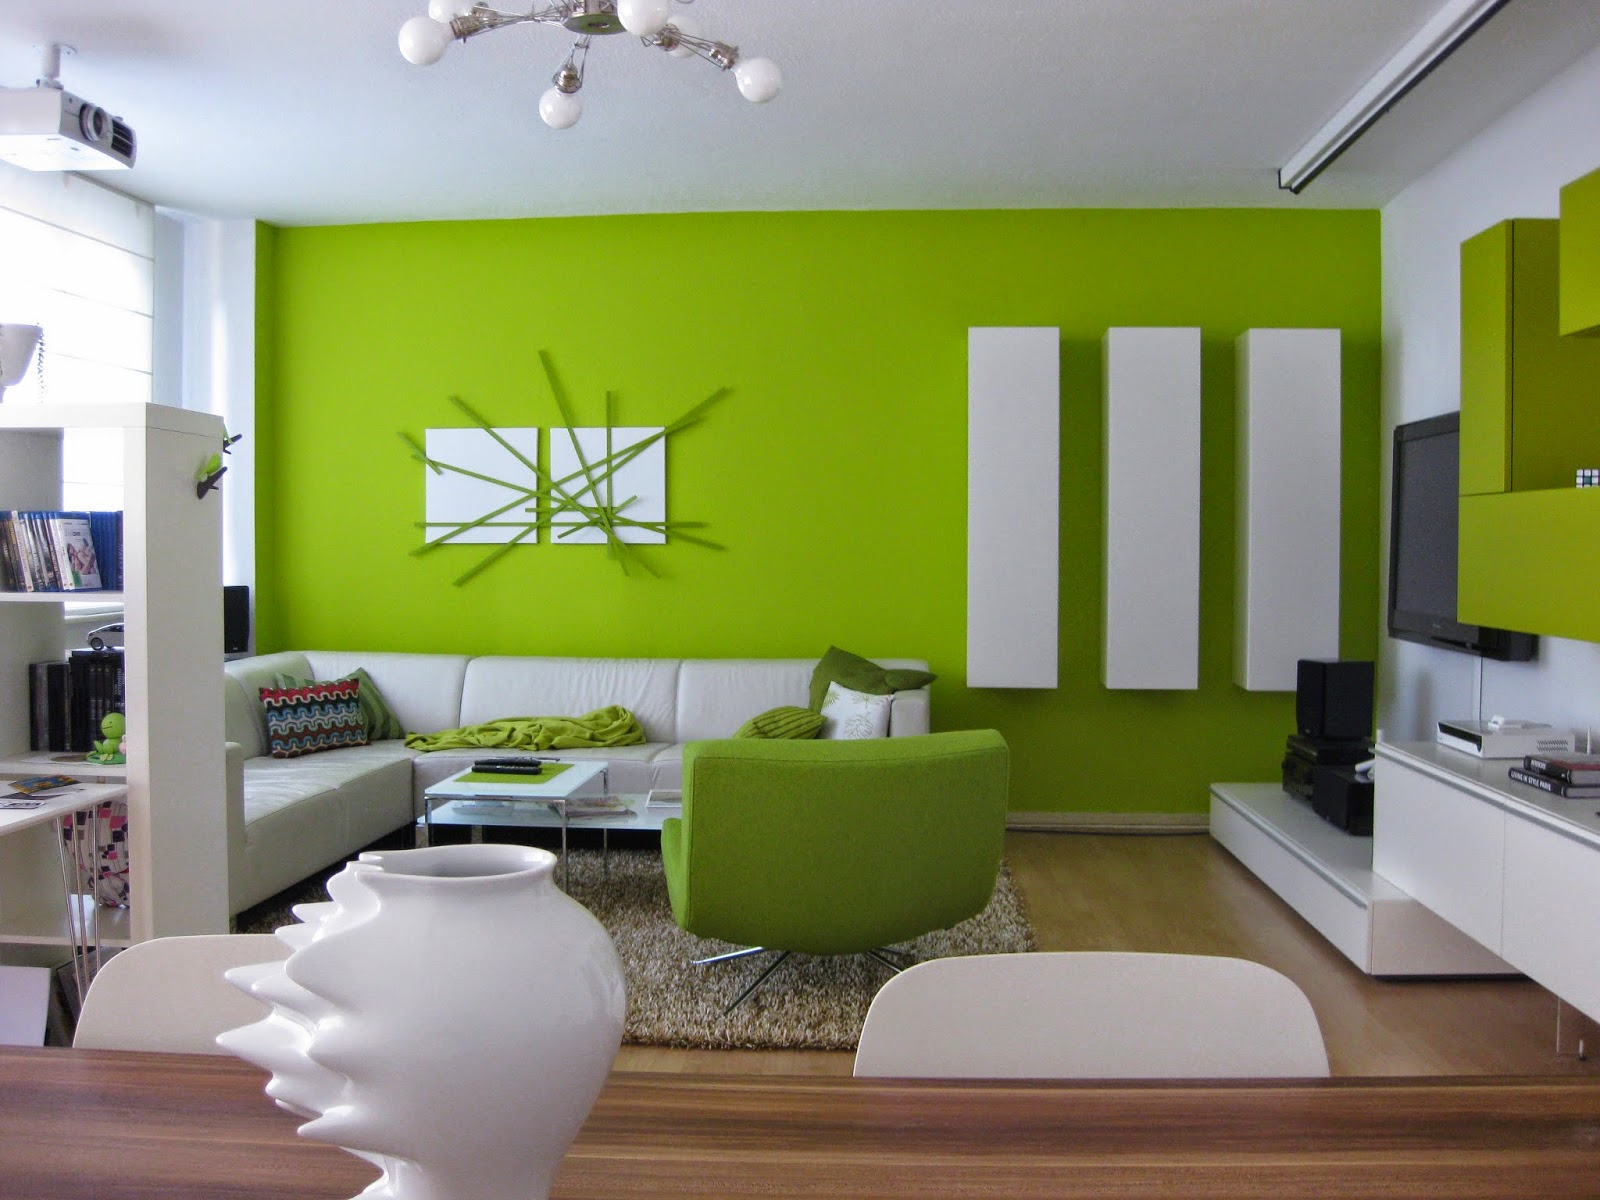 Fotos de sala en color verde salas con estilo for Pintura interior verde